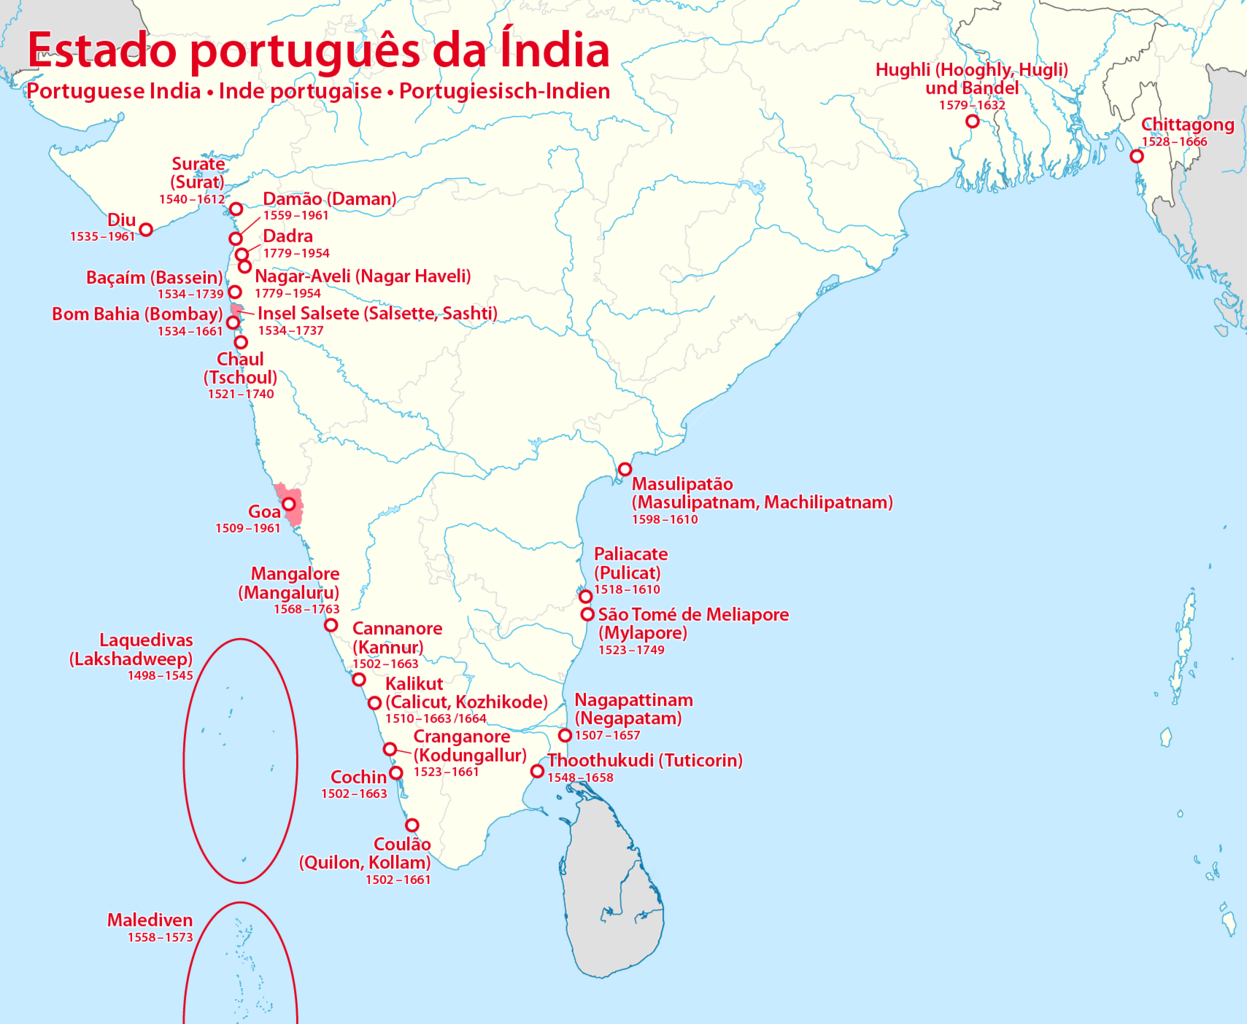 File:Map of Portuguese India.png - Wikimedia Commons on global map, geographic feature, cartography of the united states, geographic information system, satellite imagery, map projection, history of cartography, early world maps, geographic coordinate system, grid reference,